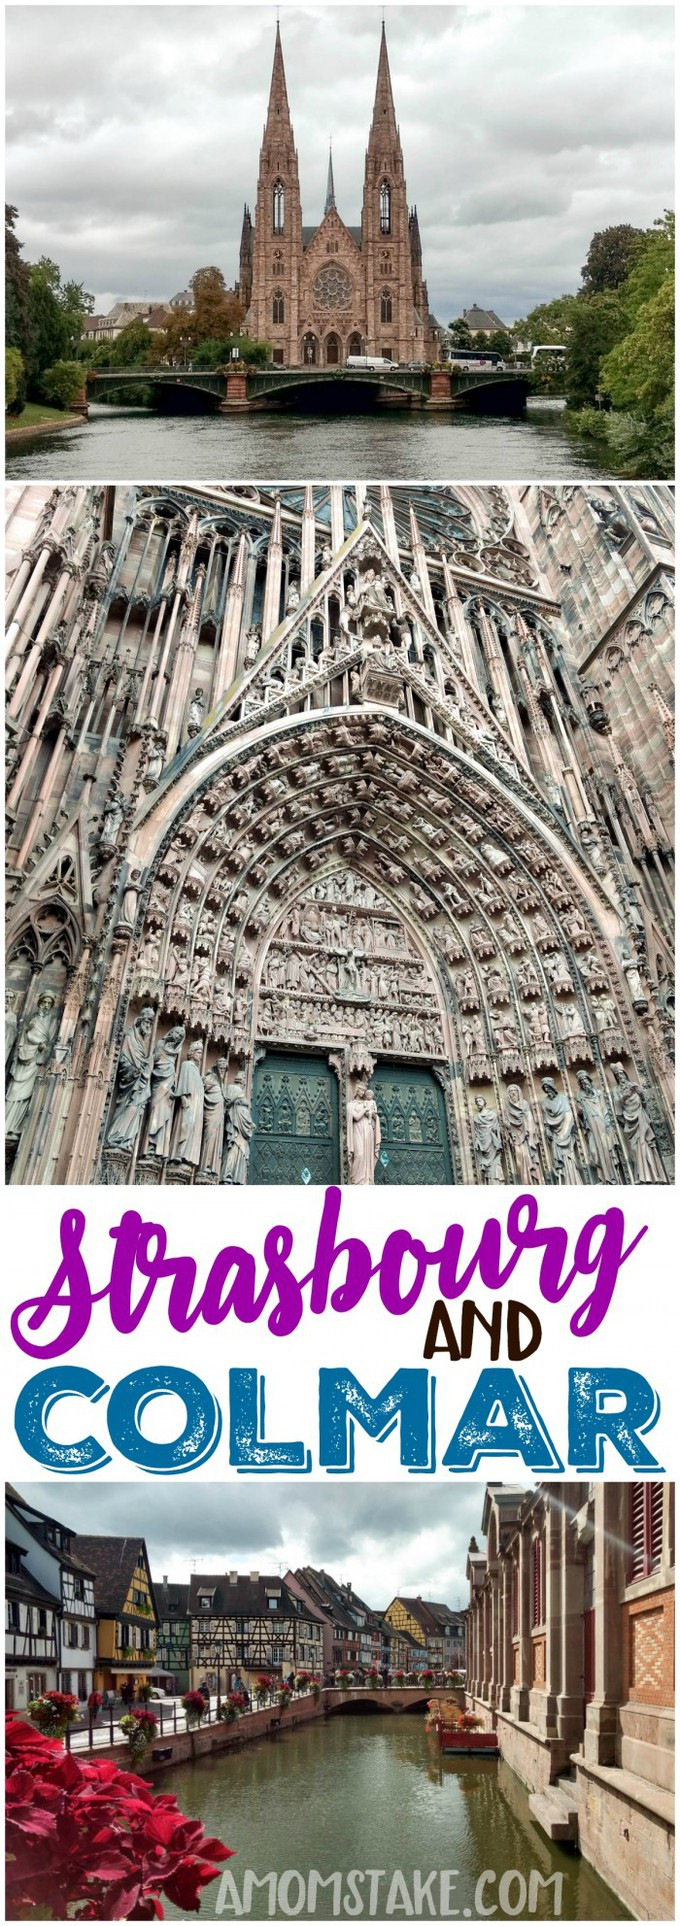 The 2nd day of our Western Europe road trip took us through Strasbourg and Colmar France to see these beautiful and unique cities. Road trip Europe! #travel #trip #roadtrip #vacation #europe #france